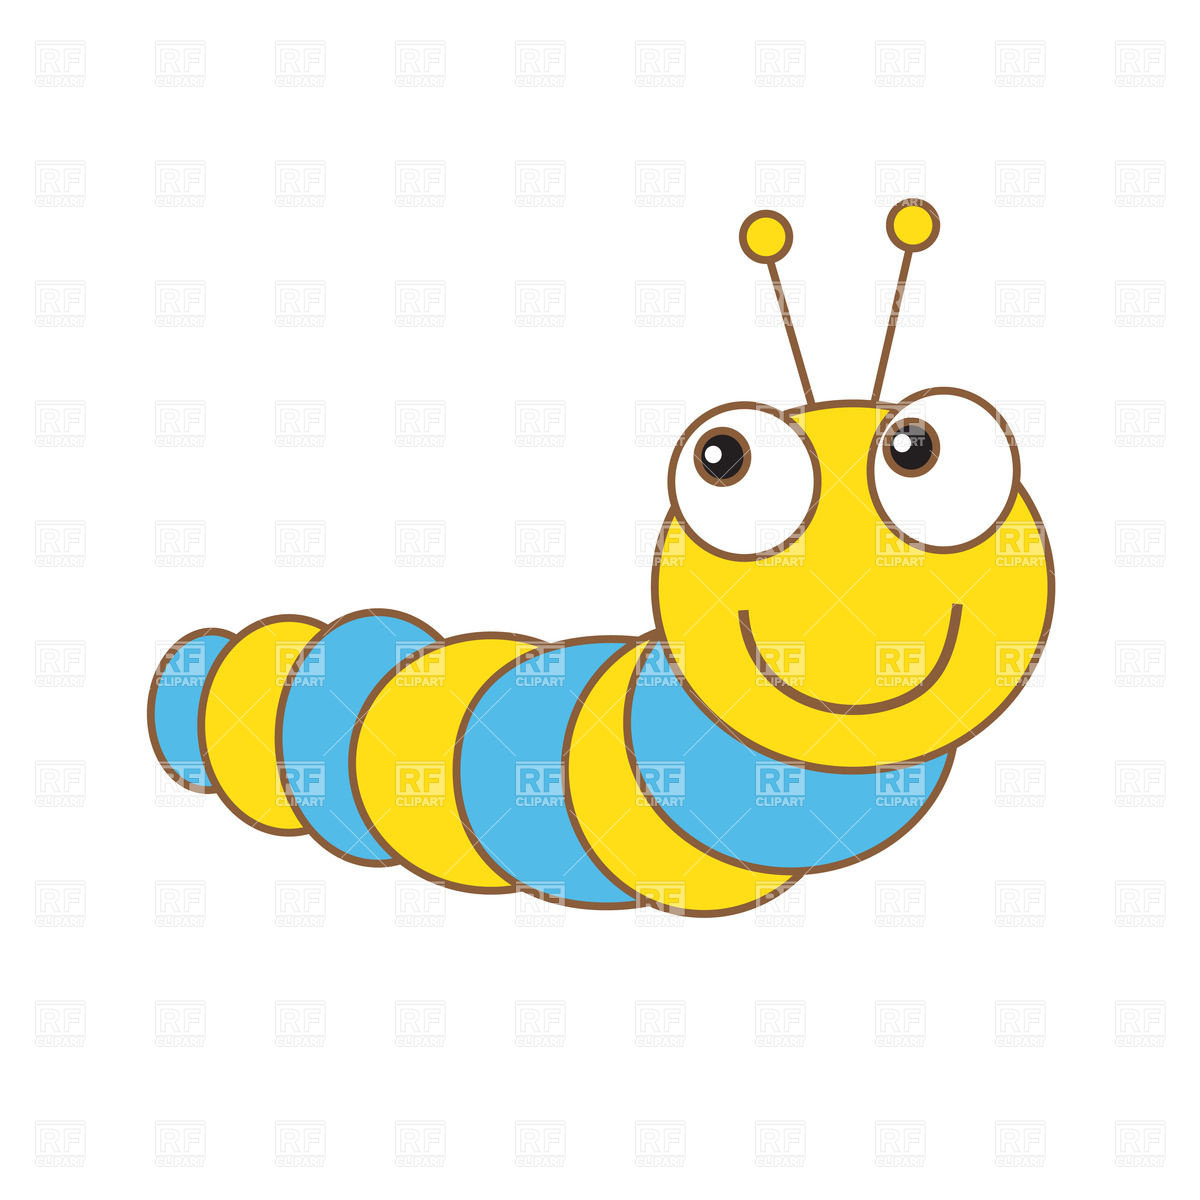 Cute Cartoon Caterpillar Download Royalty Free Vector Clipart  Eps